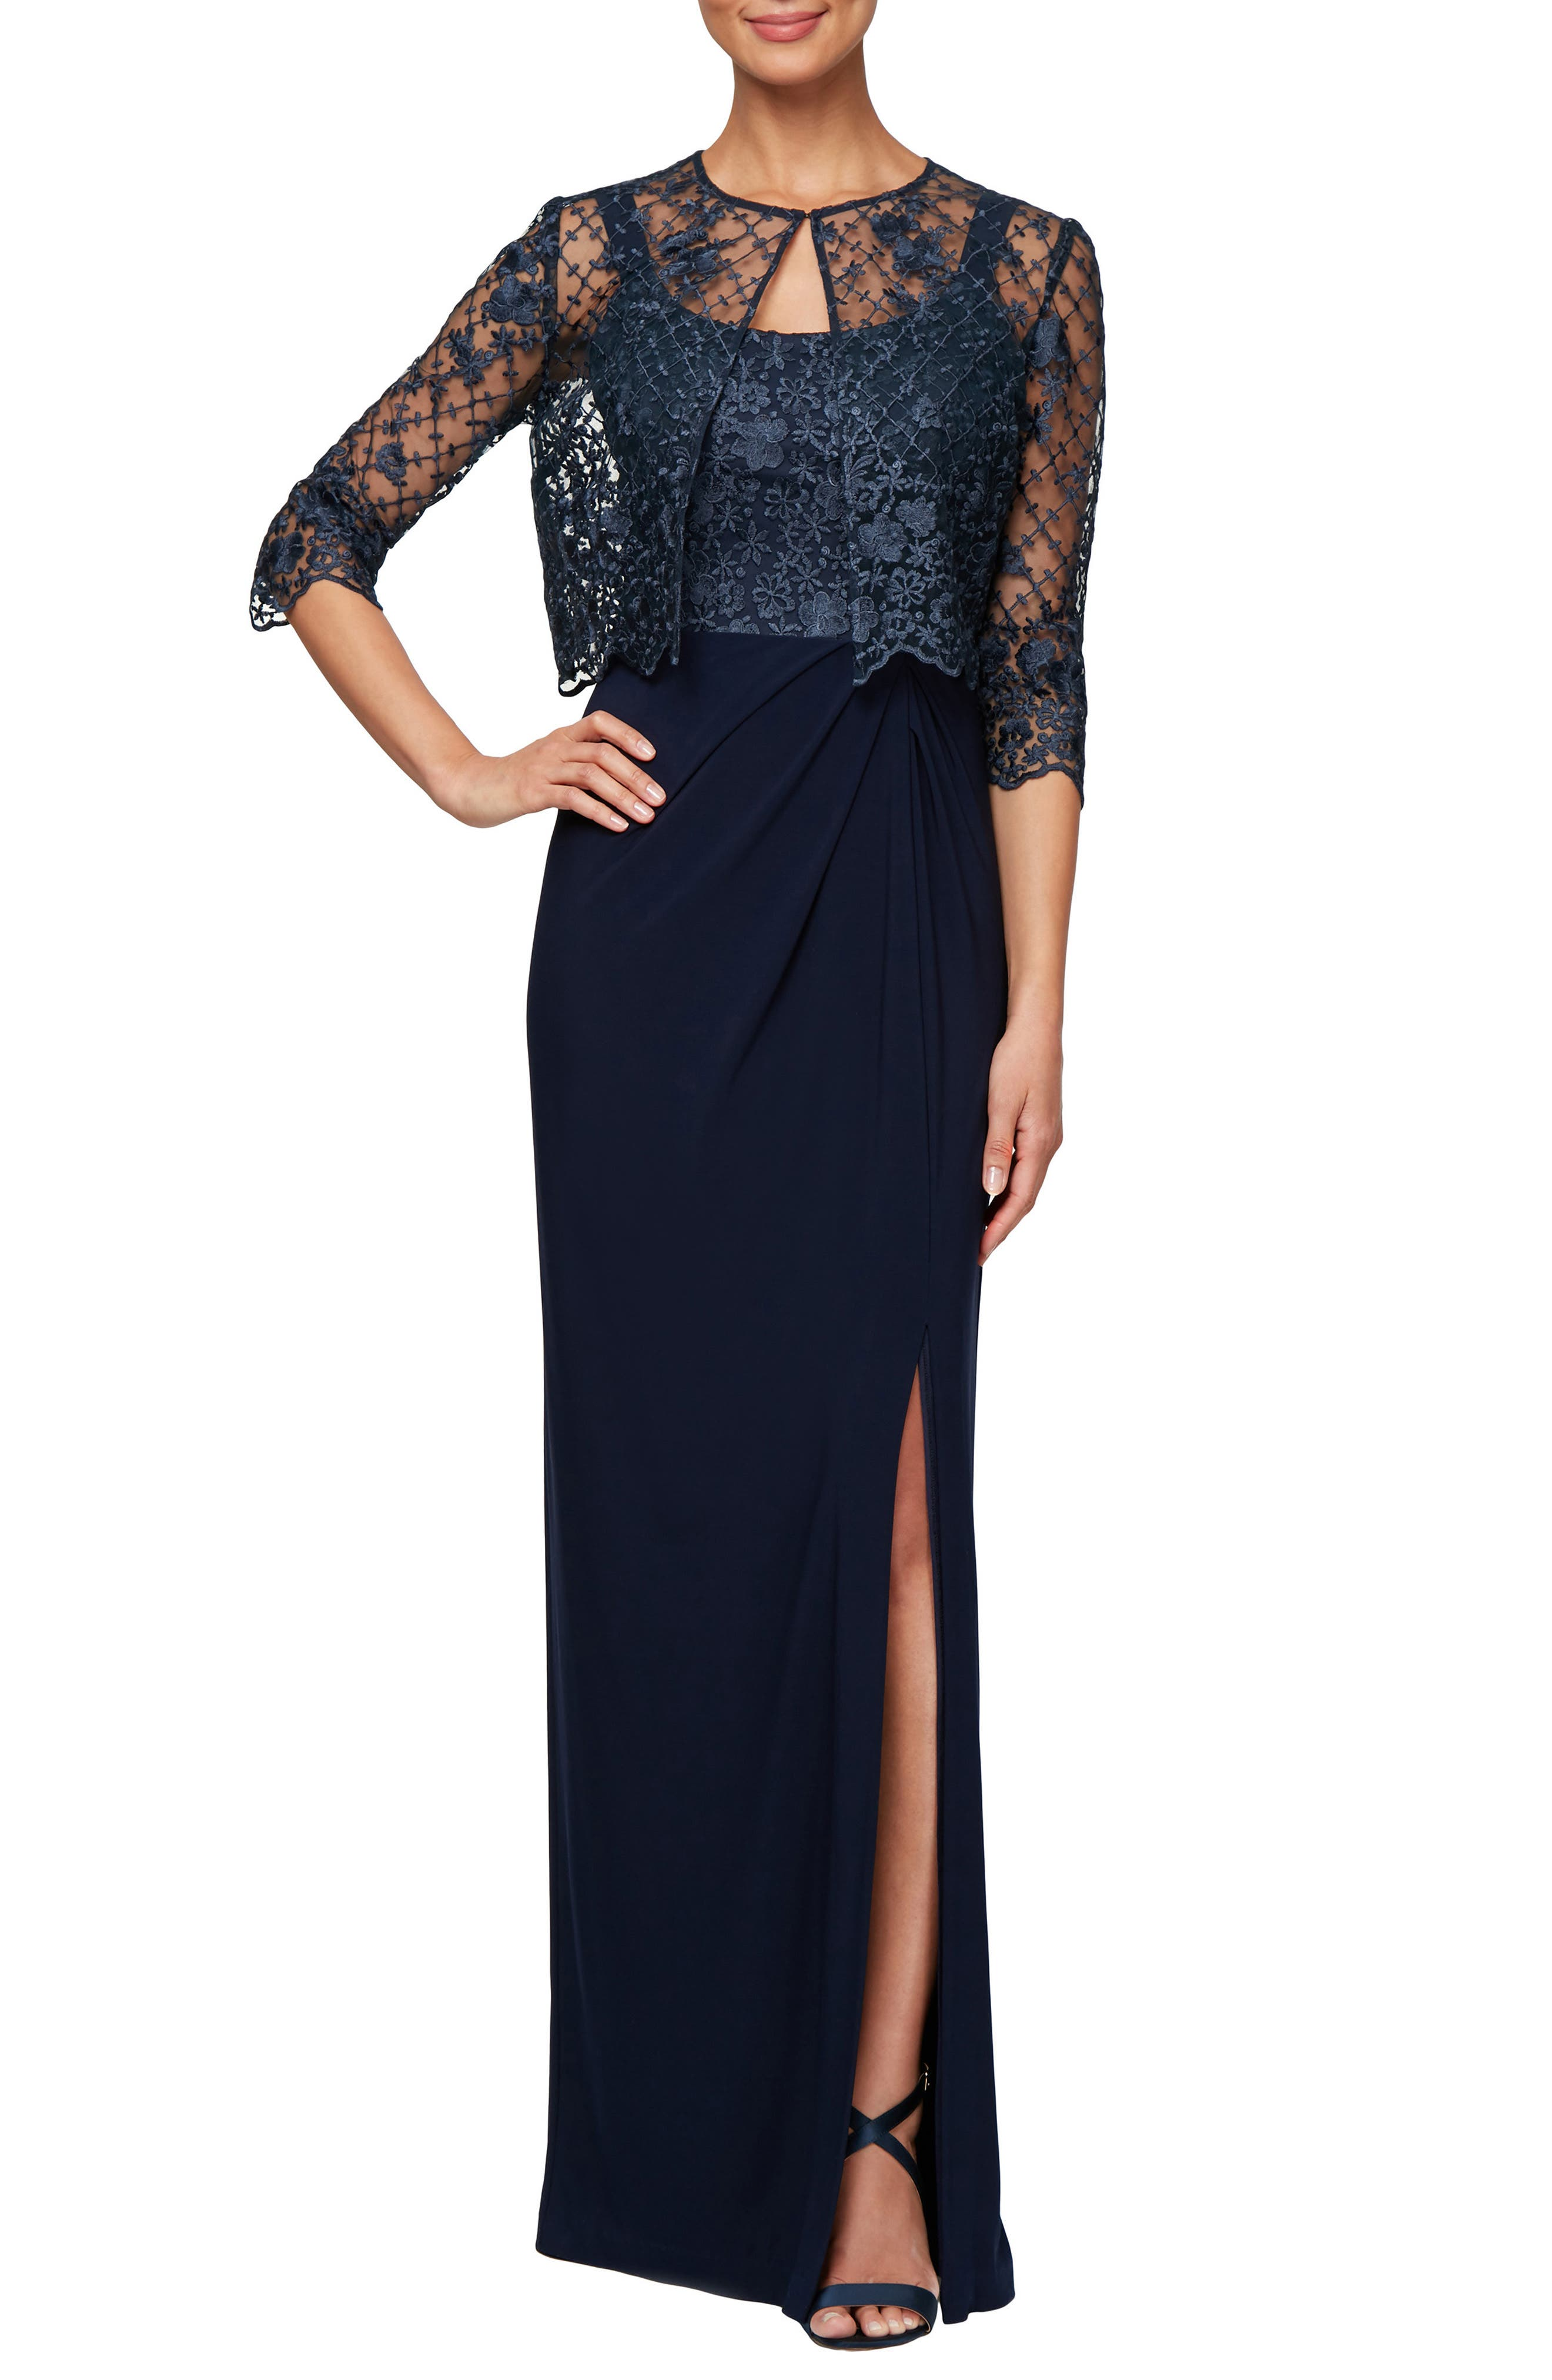 Petite Alex Evenings Sleeveless Evening Dress With Lace Jacket, Blue